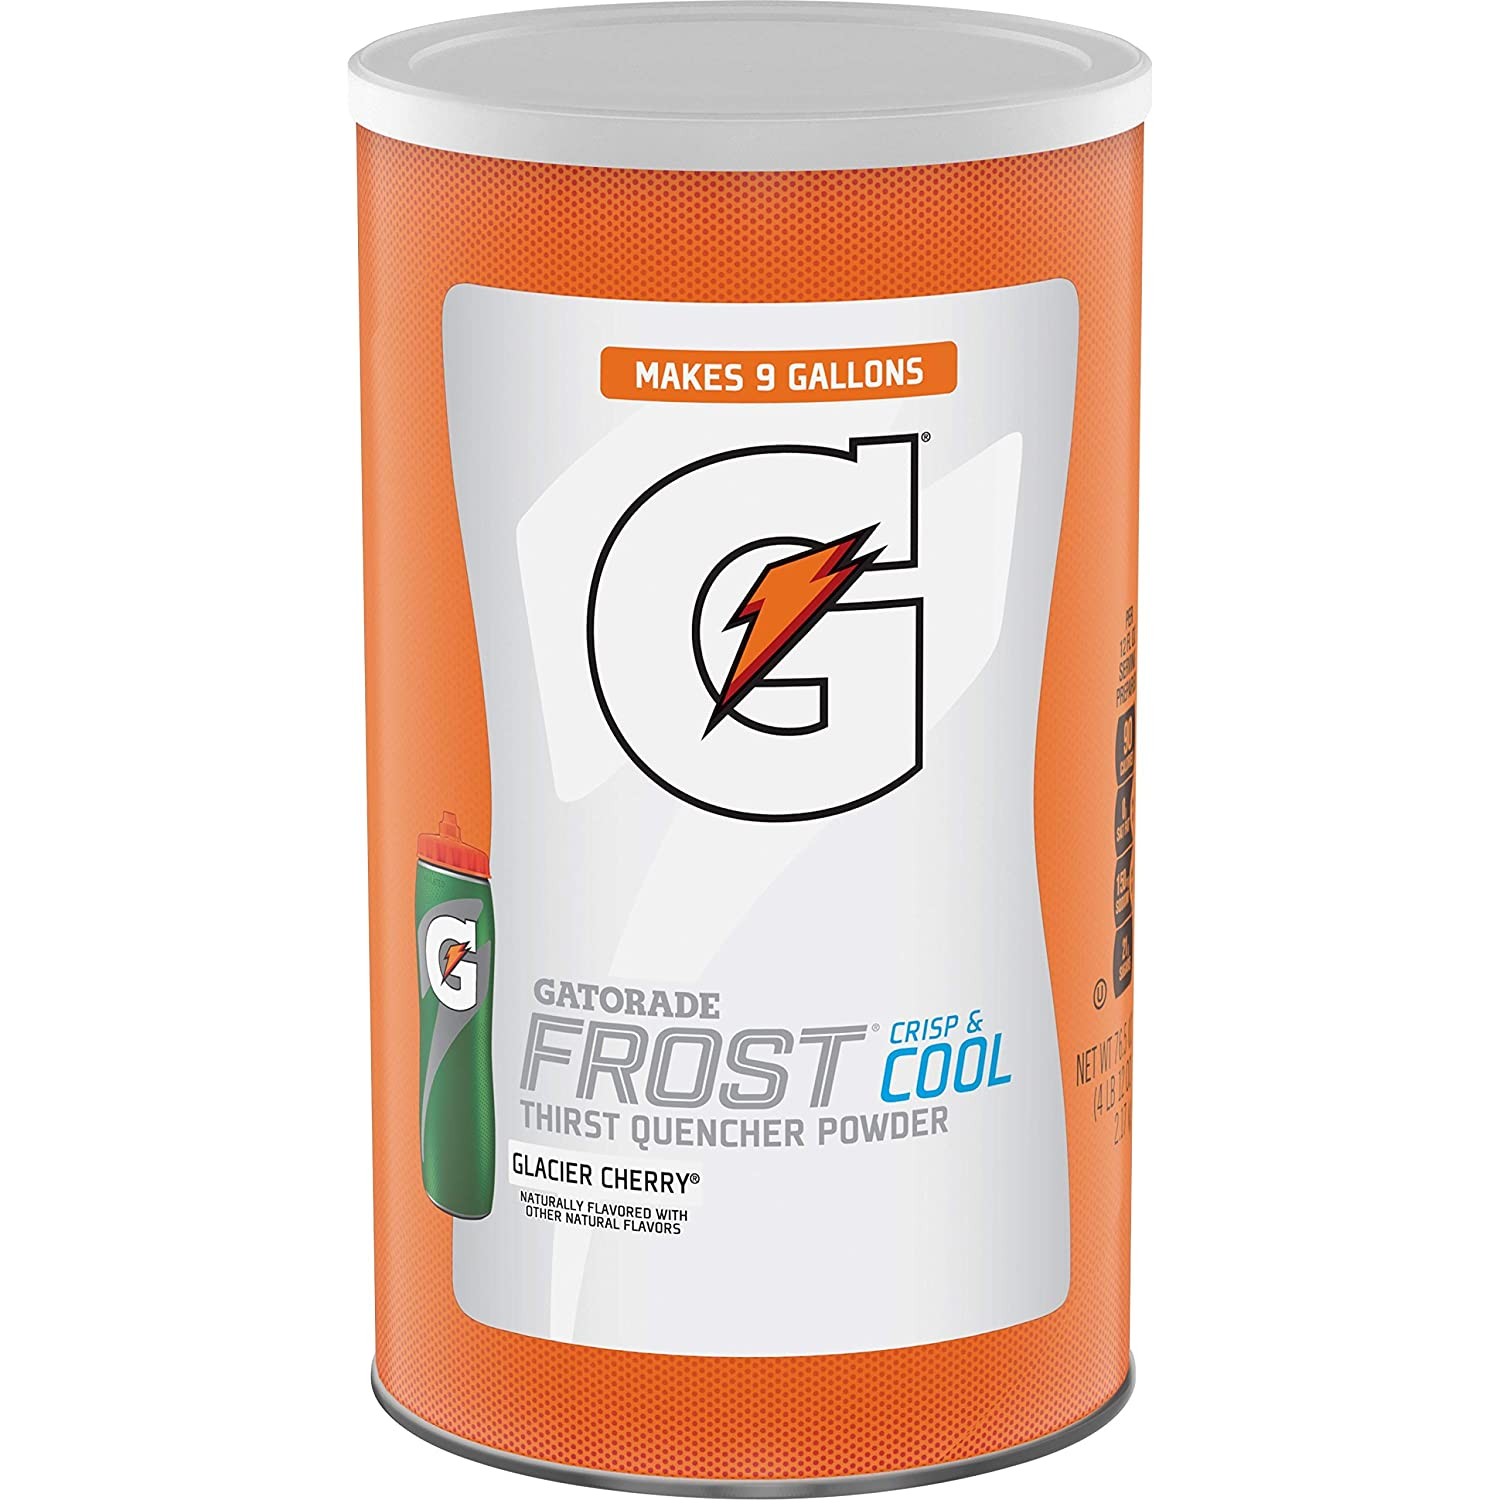 Gatorade Thirst Quencher Powder, Glacier Cherry, 76.5 oz Canister